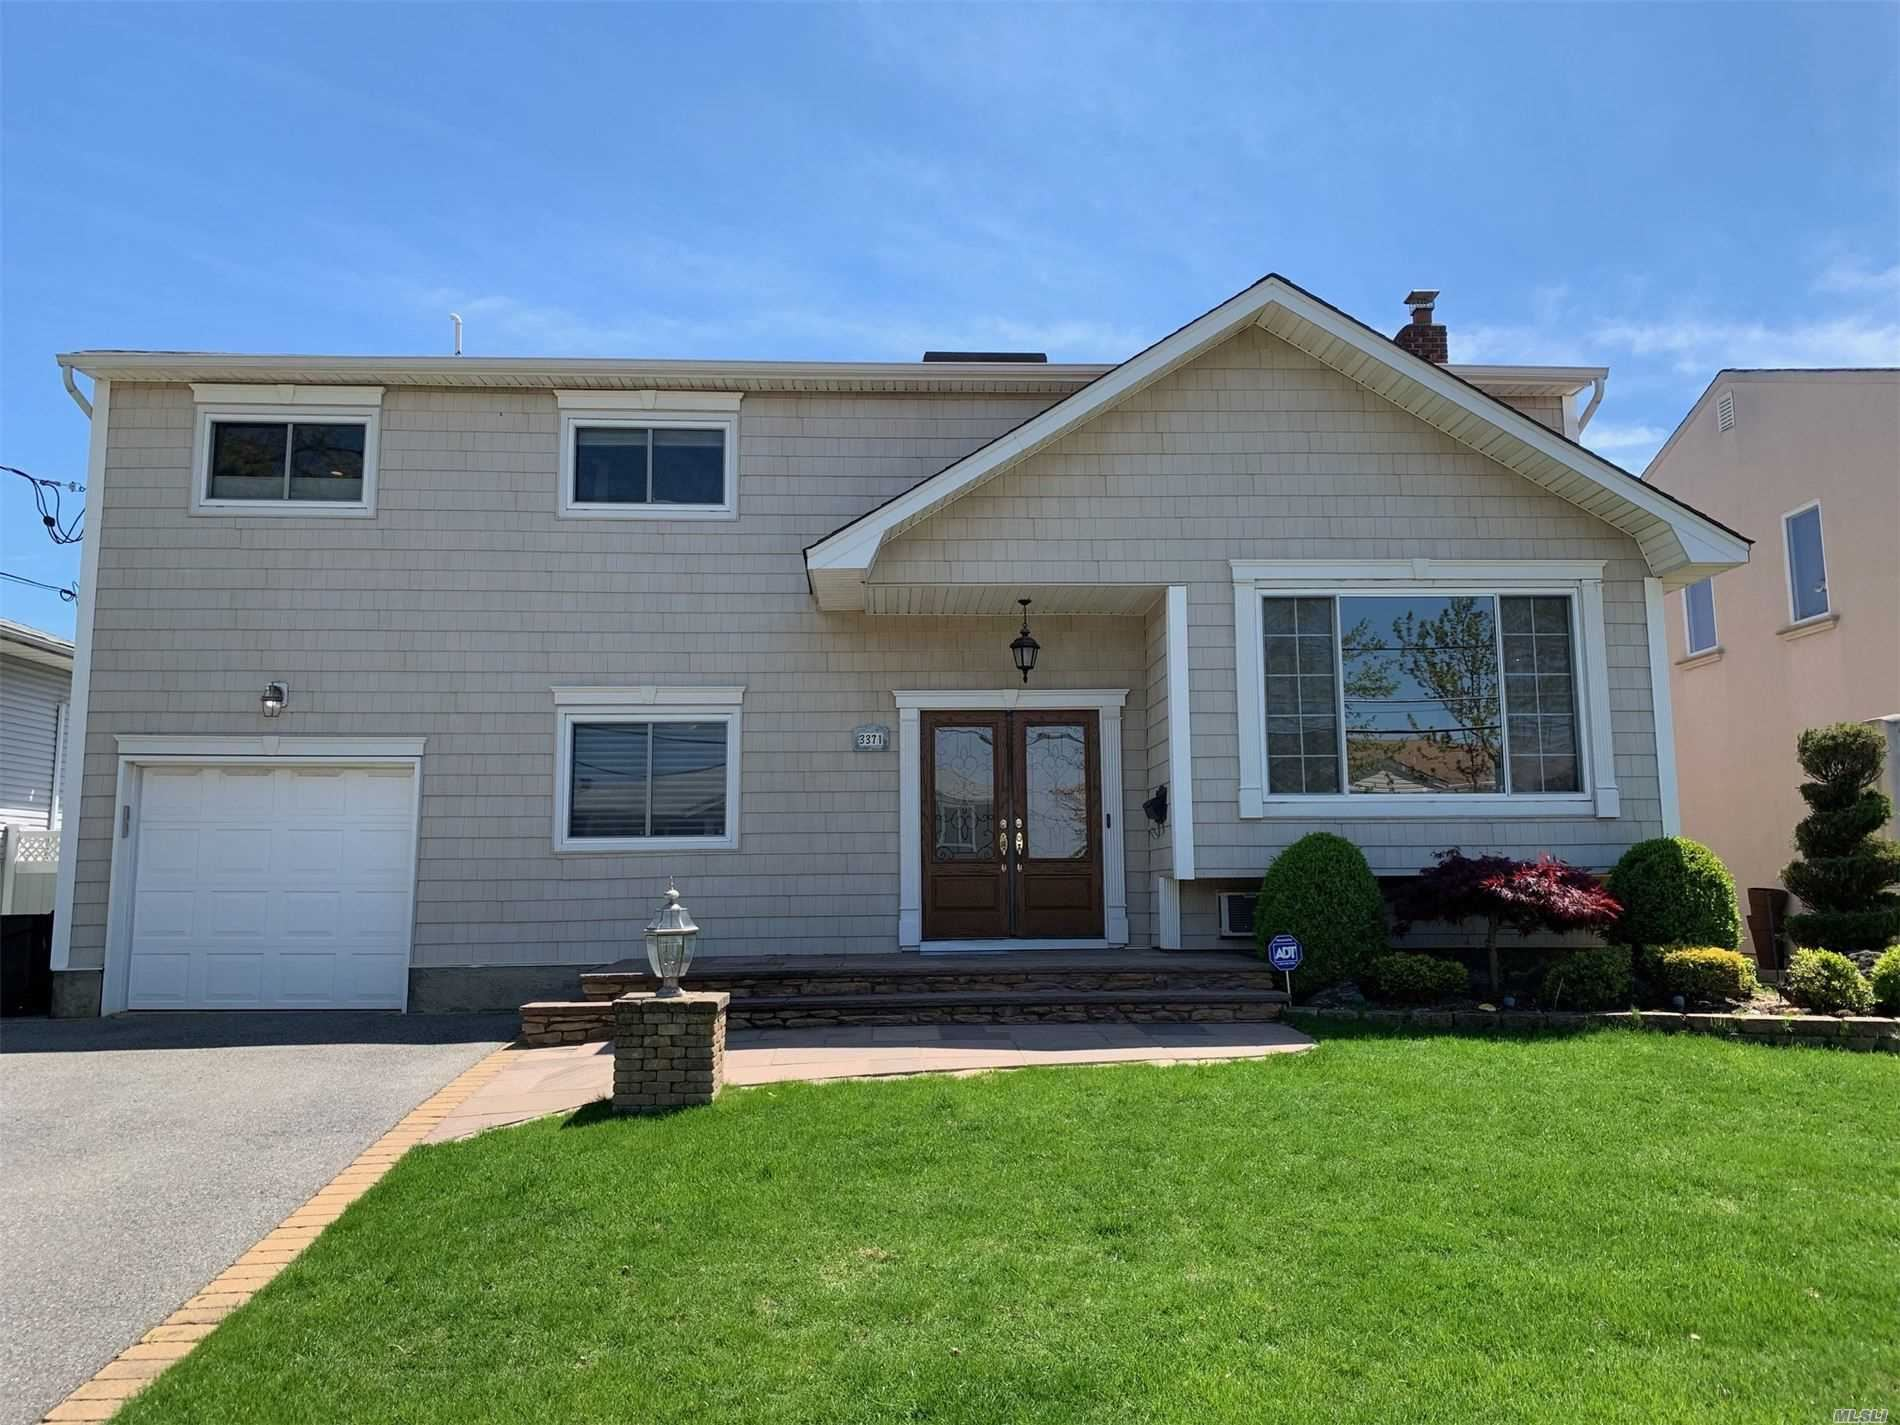 3371 Ocean Harbor Dr, Oceanside, NY 11572 - MLS#: 3214076